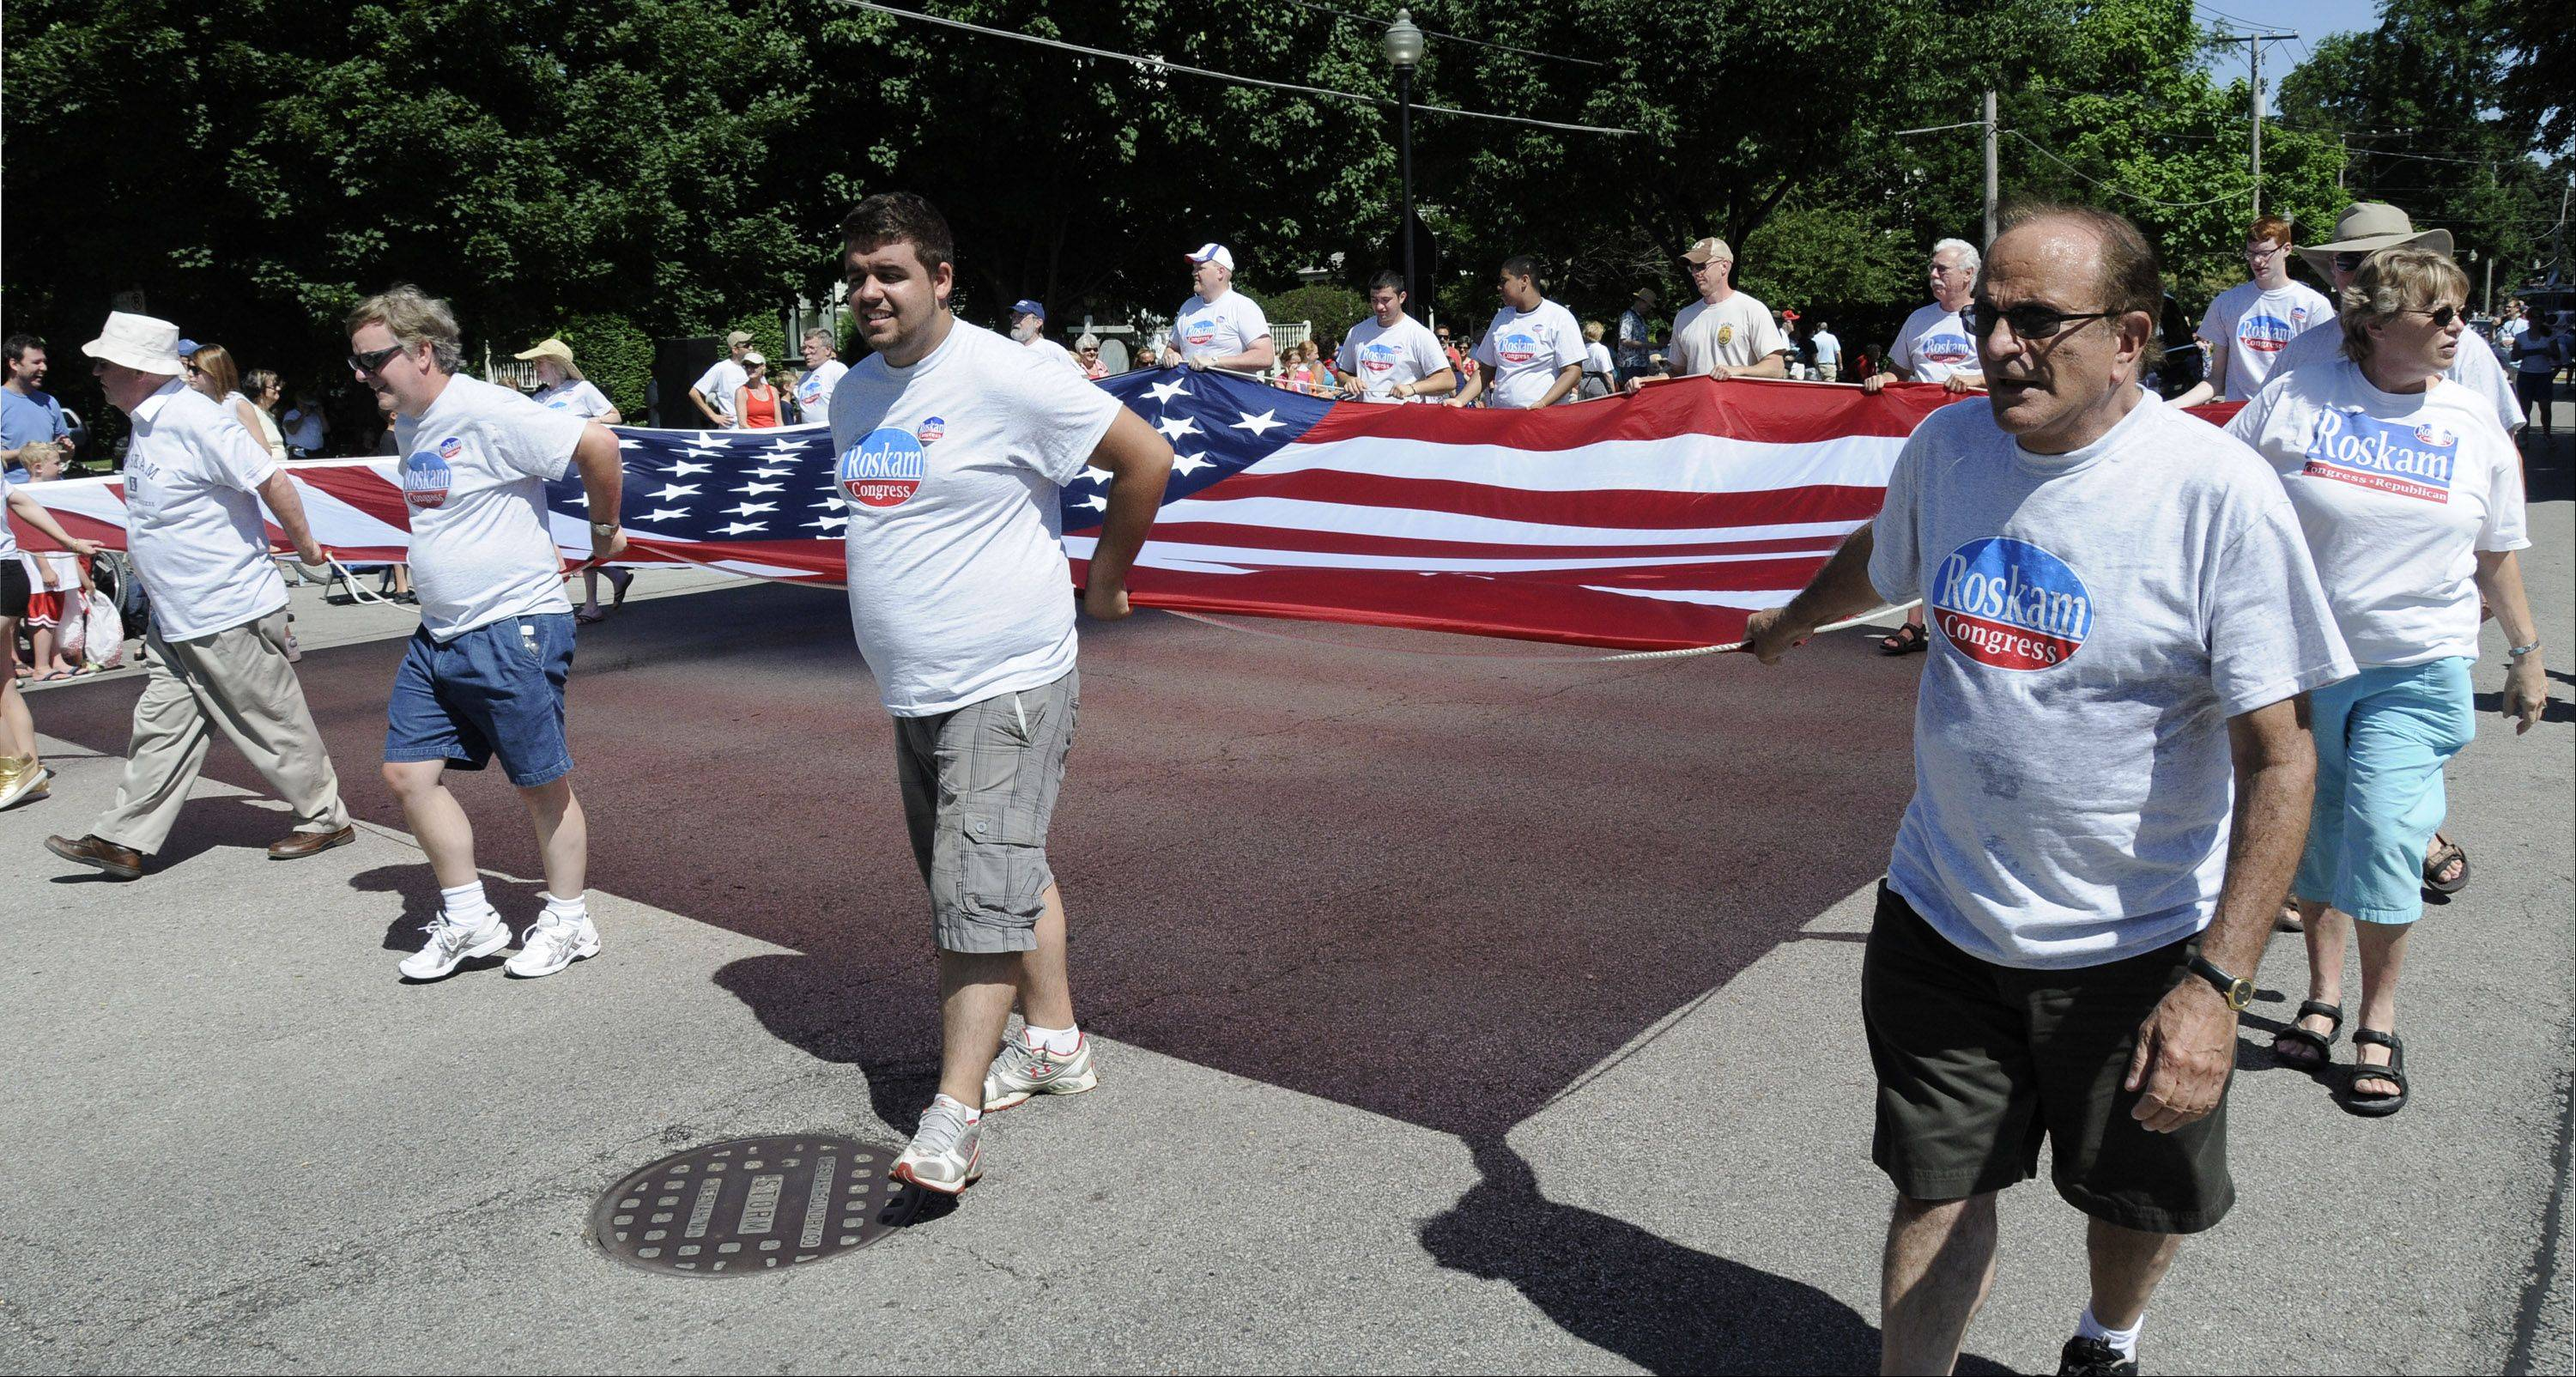 Friends and supporters of Republican Congressman Peter Roskam work to carry a large flag in Wheaton's Independence Day parade.